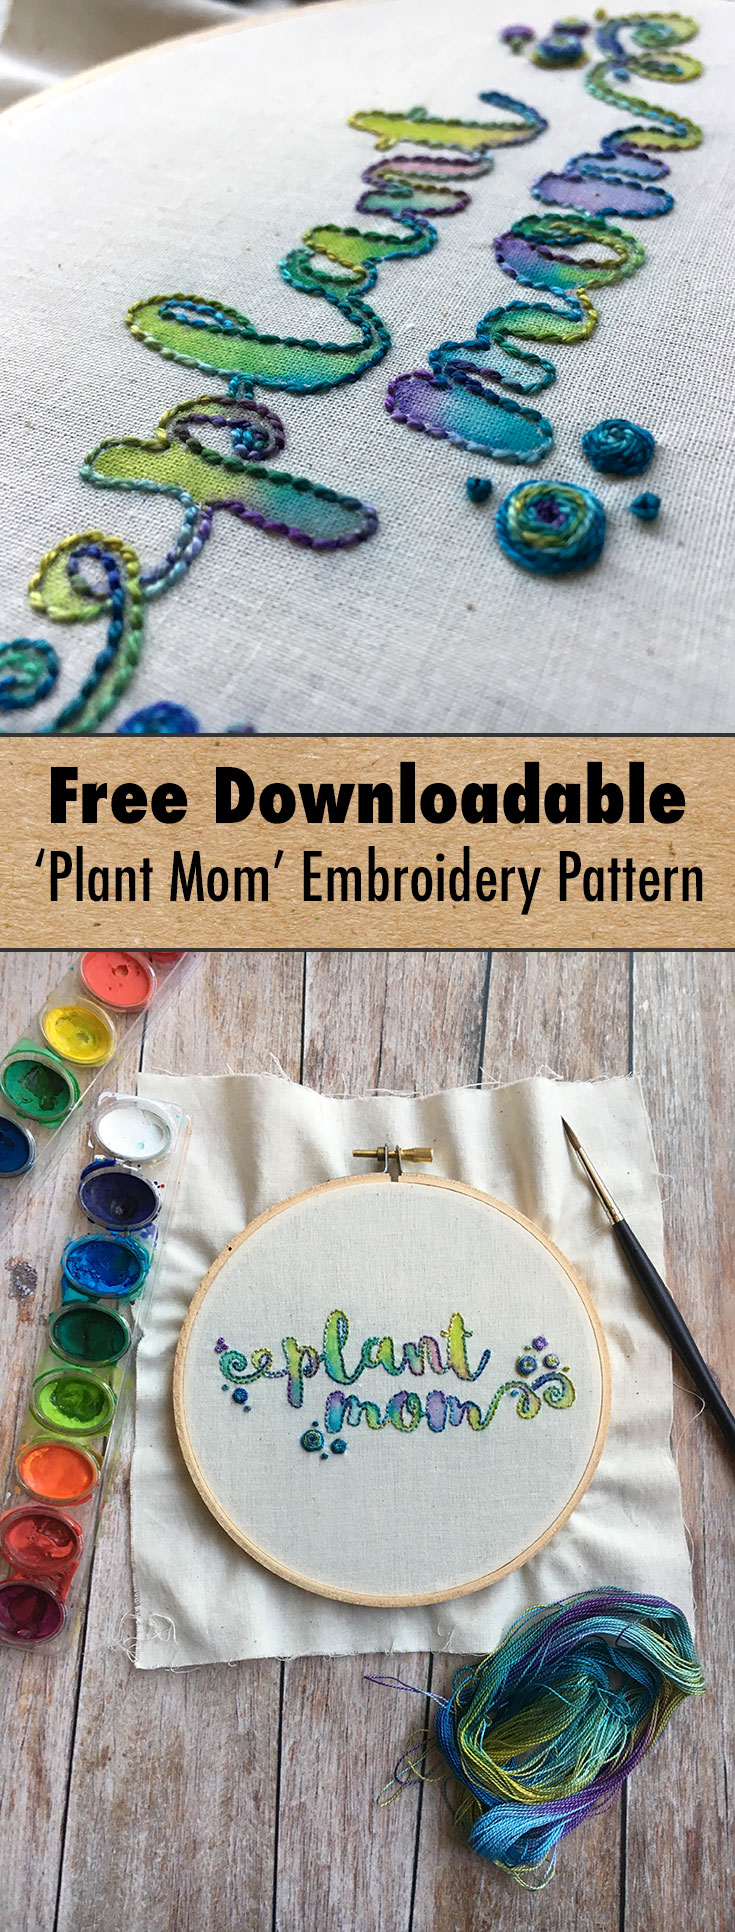 """Download this free """"Plant Mom"""" embroidery pattern!"""